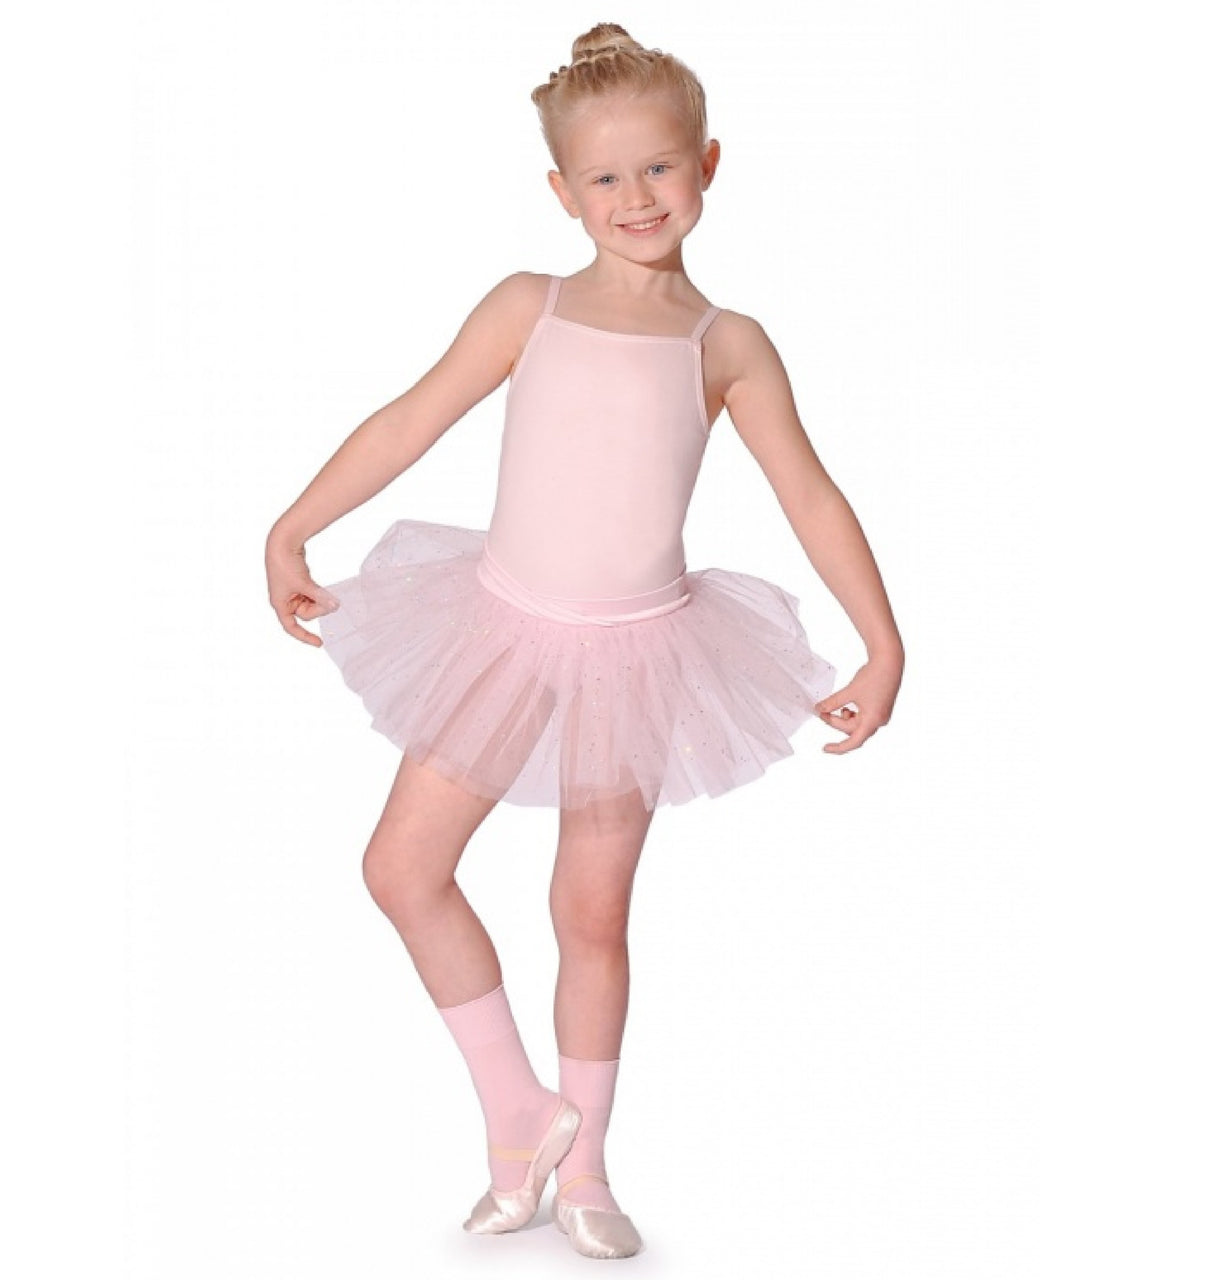 Capezio N9814C - Tutu Dress Child